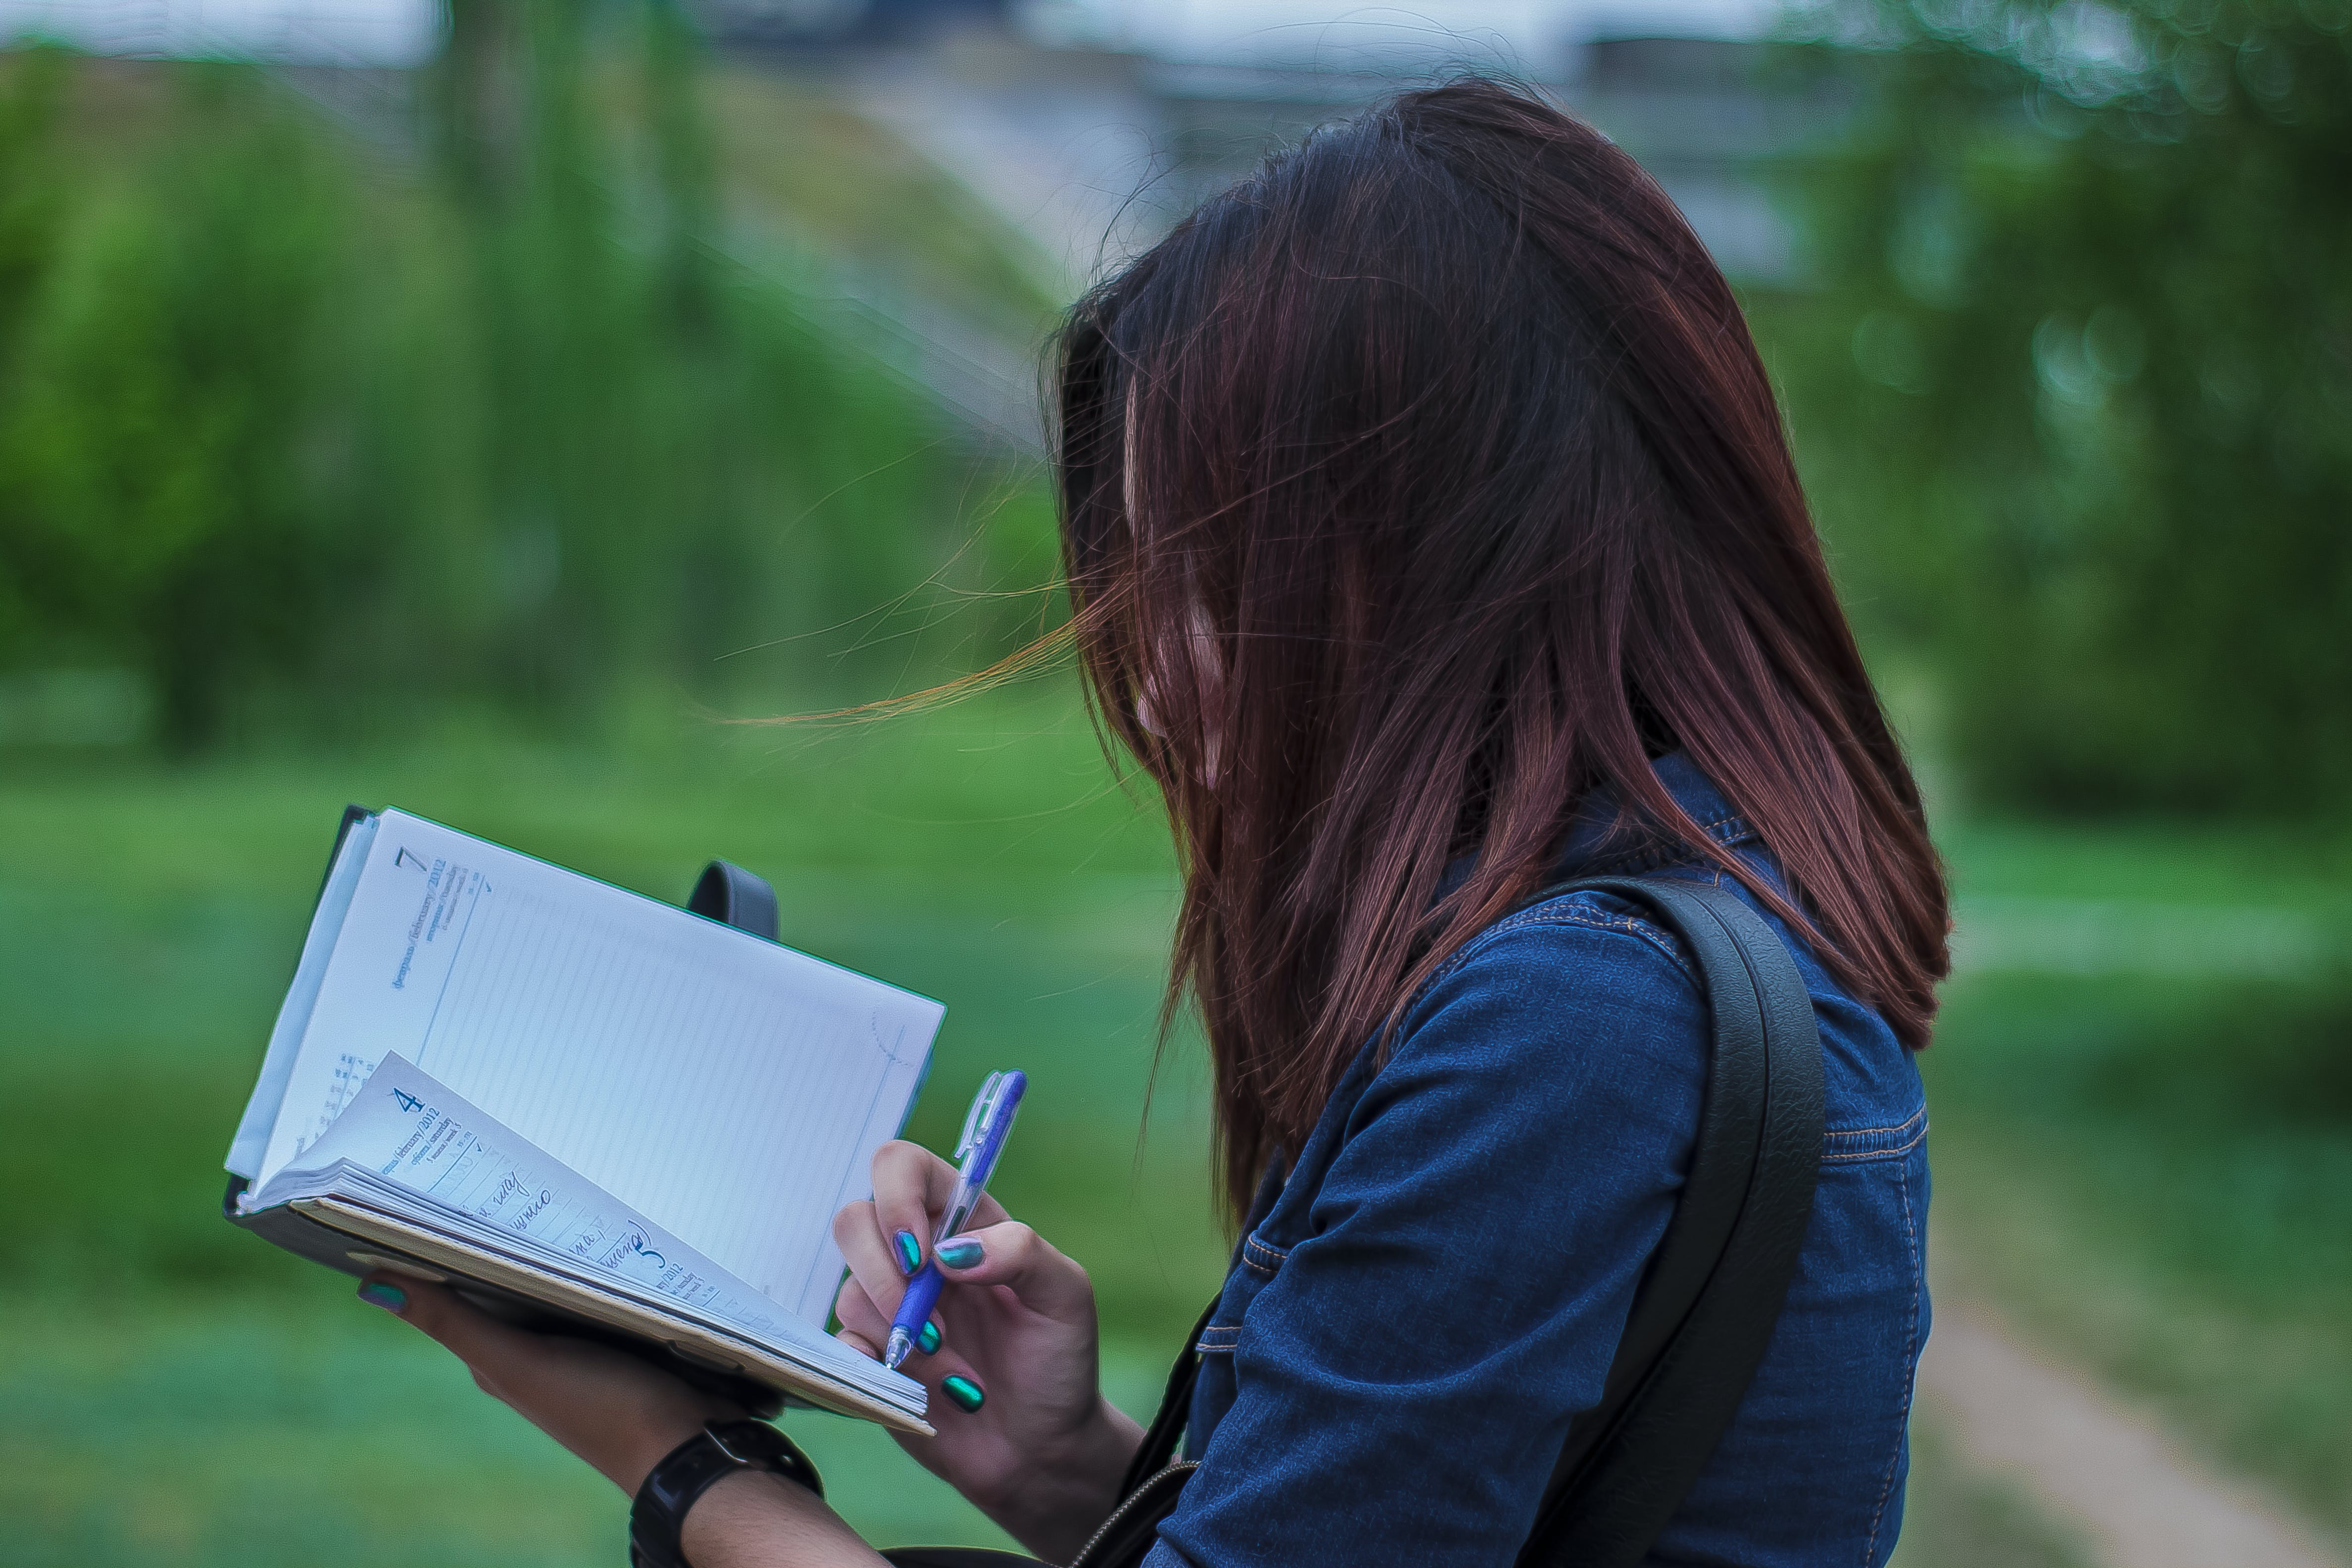 Close-Up Photography of a Person Writing on Notebook